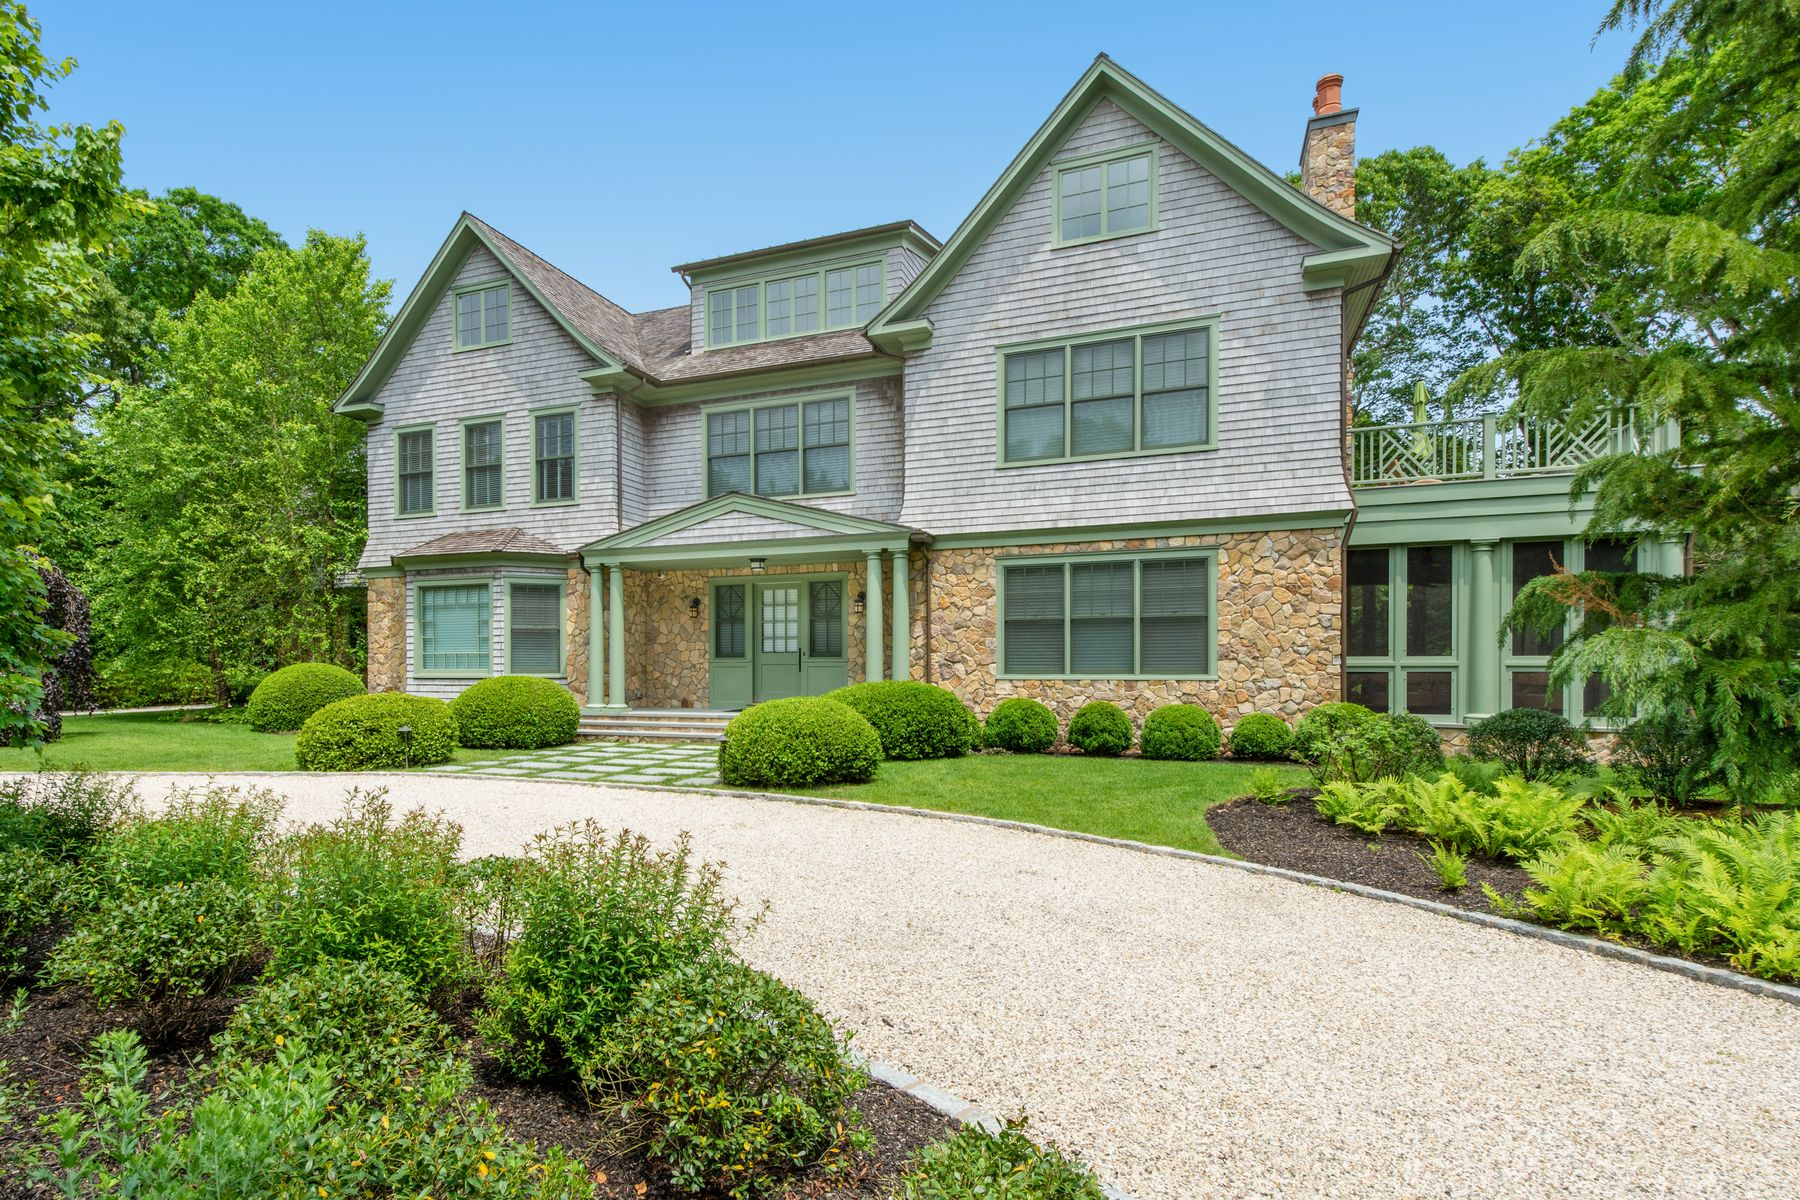 Single Family Homes for Active at NEW GORGEOUS ESTATE W/ BEACH ACCESS 49 Robertson Drive Sag Harbor, New York 11963 United States